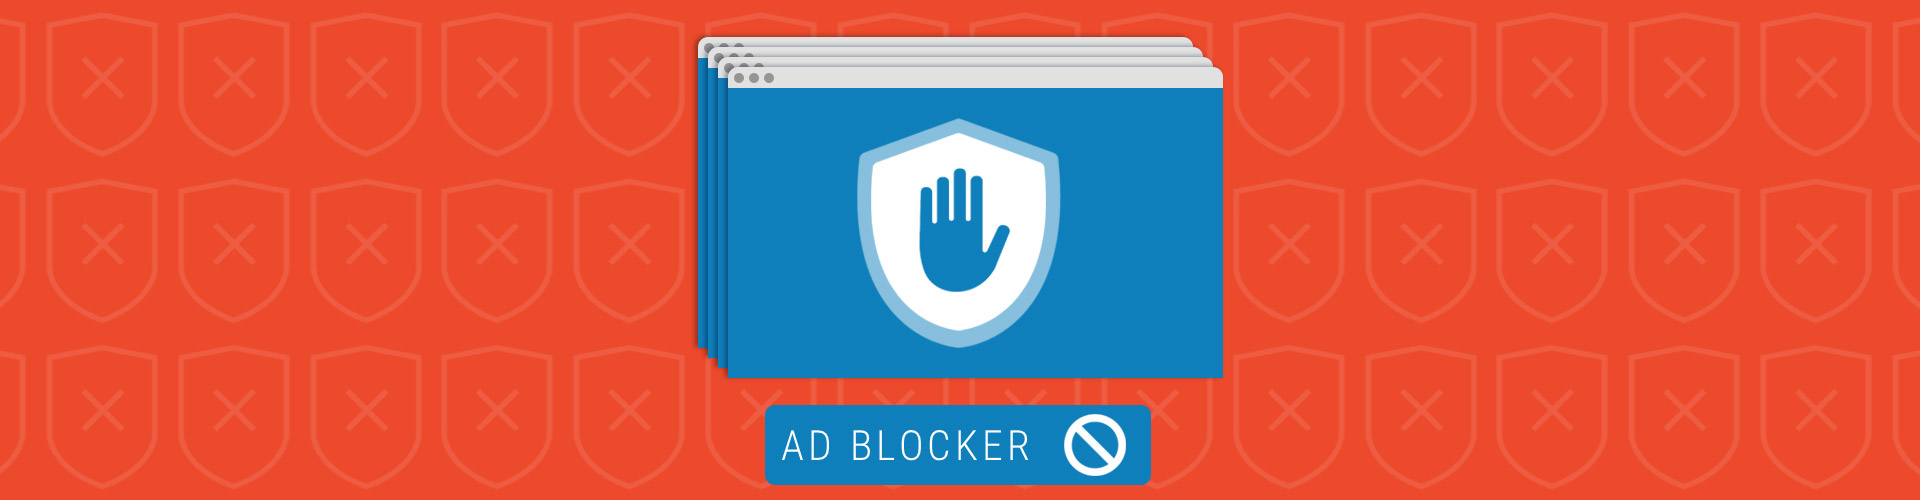 Are We Seeing a Resurgence of Ad Blockers?